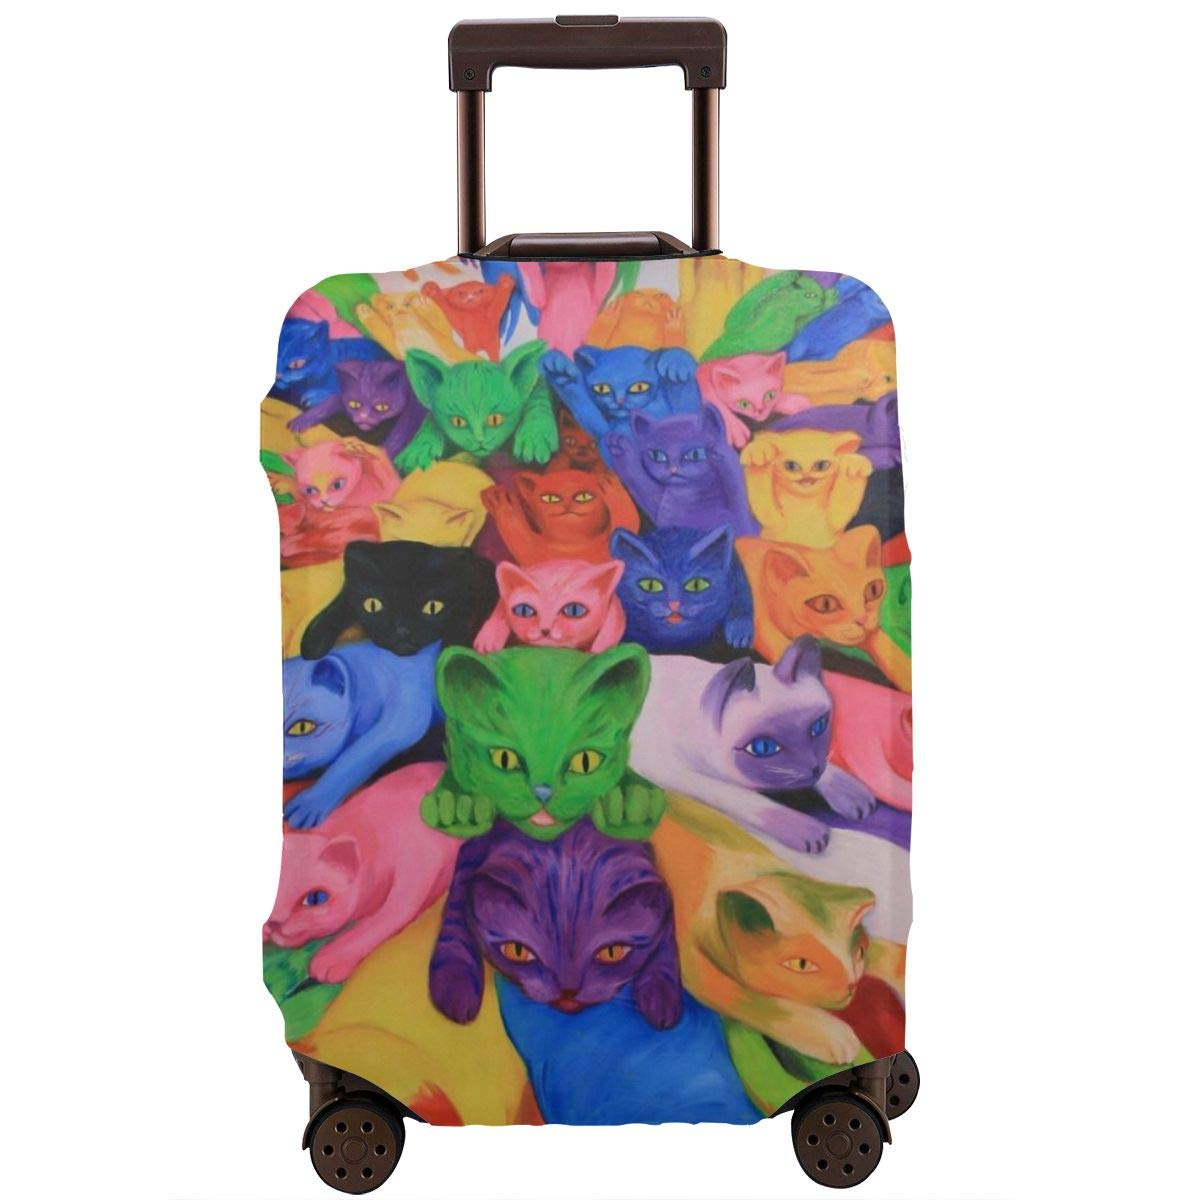 Luggage Covers Suitcase Protector Travel Suitcase Baggage Cover Psychedelic Tie Dye Funny Cat Fit 18 To 32 Inch